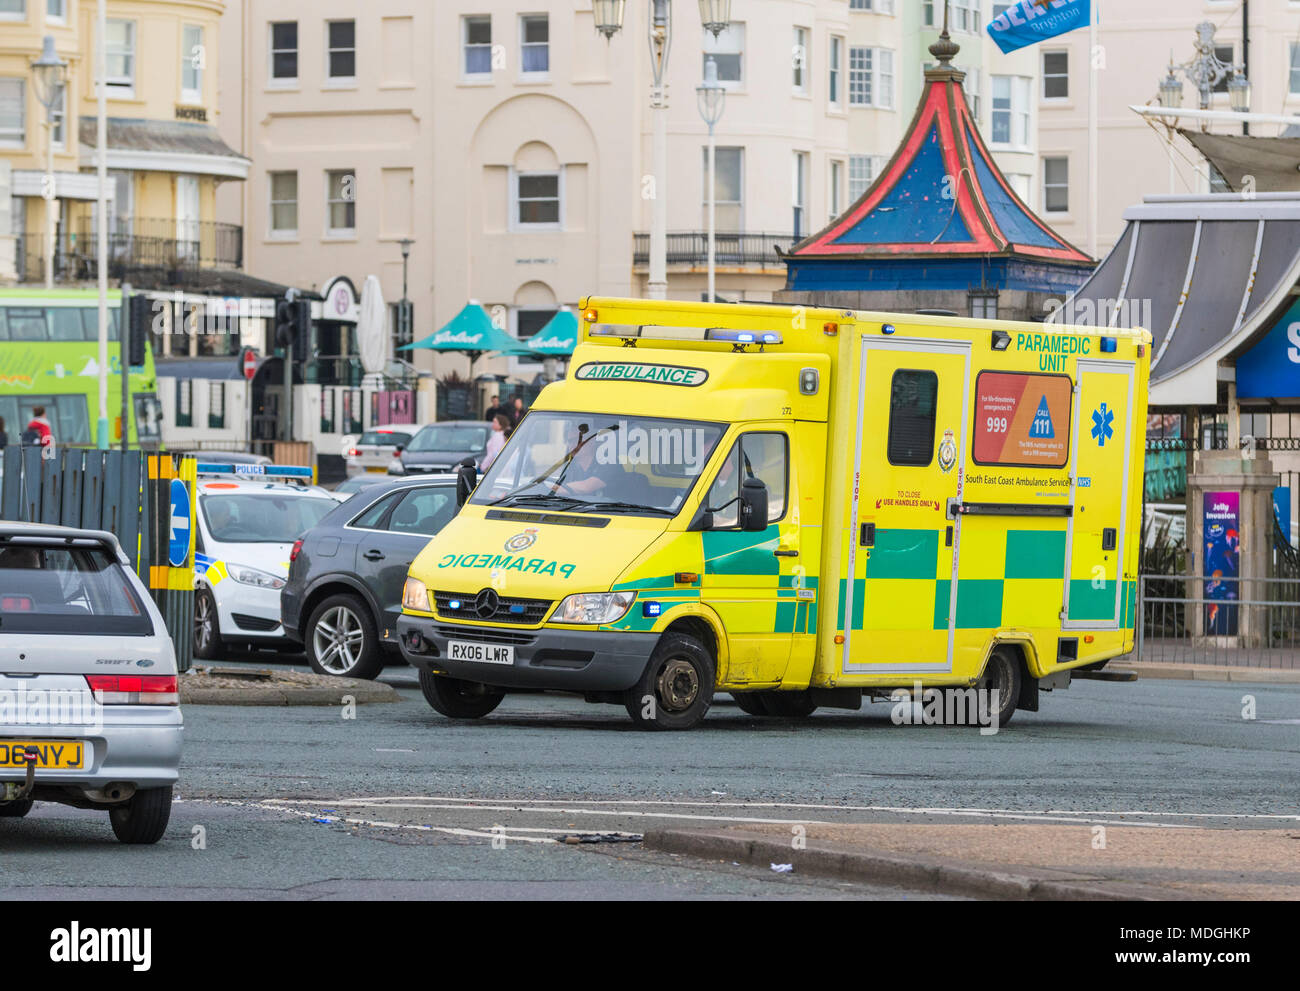 British NHS Ambulance in busy traffic on a roundabout, on a call with blue lights flashing in Brighton, East Sussex, England, UK. Stock Photo